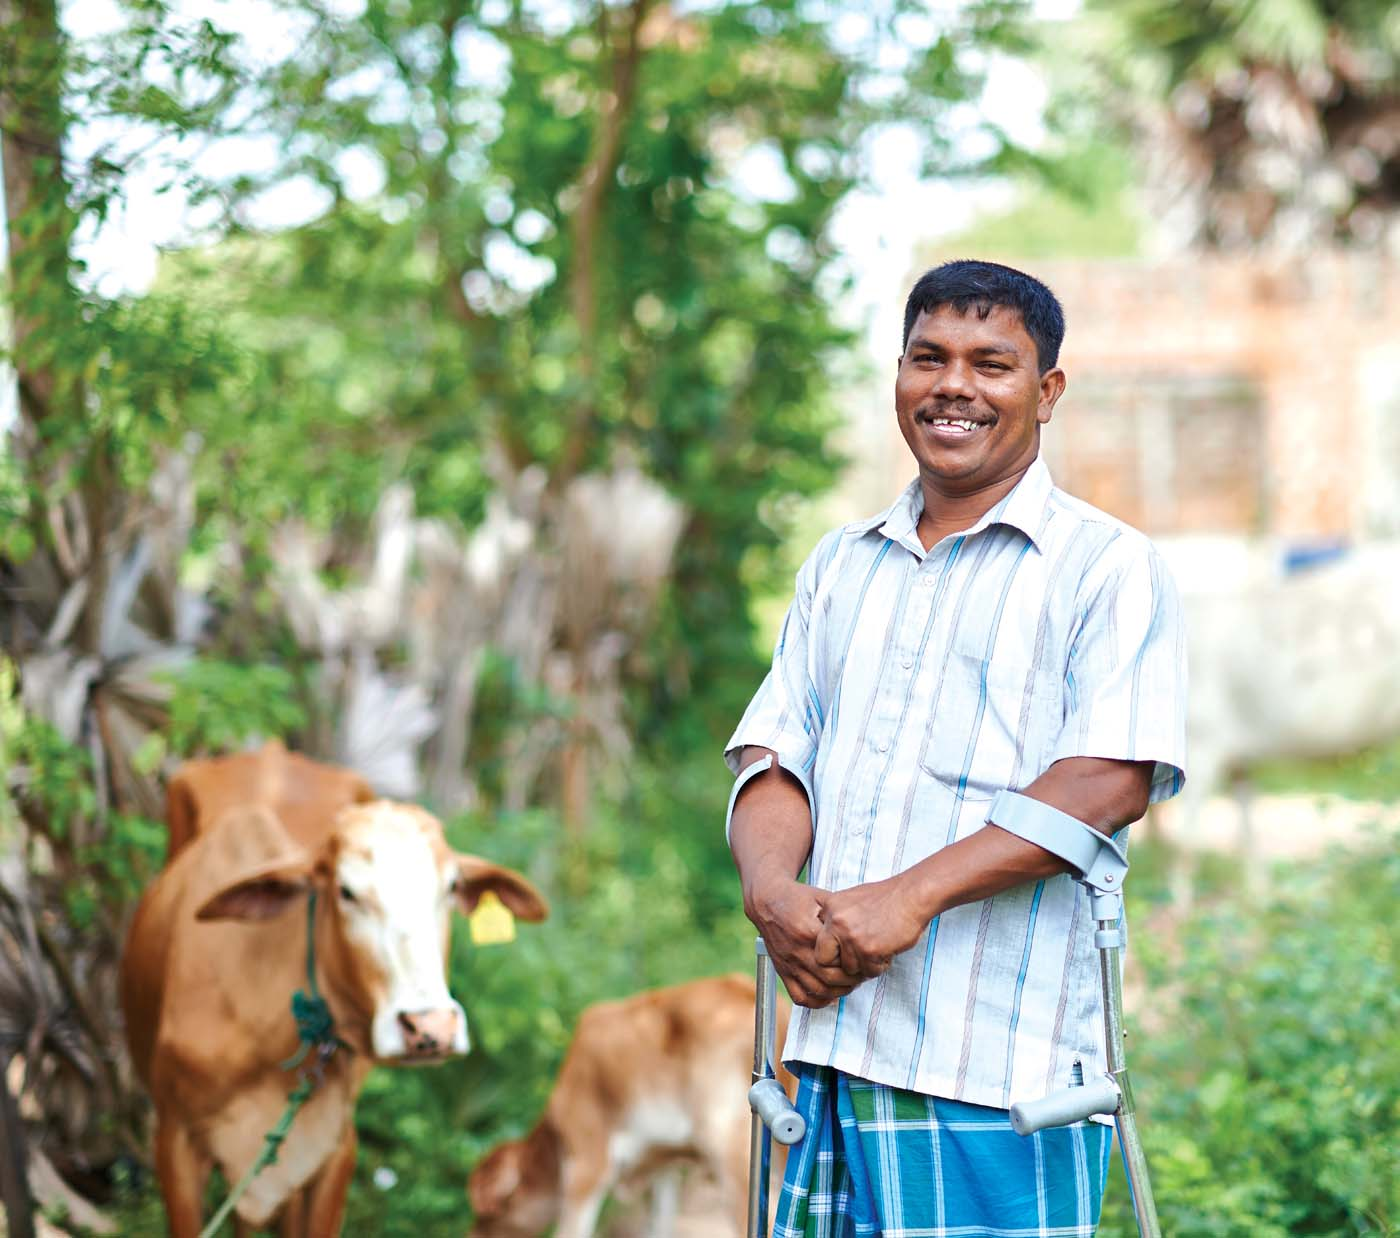 Kanapathy Yogarasa was a child rebel-combatant and surrendered to the state in 2009. He is an amputee and is currently engaged in dairy farming. The Foundation's Small Entrepreneur Programme provided him with cattle in hopes of dignifiedly empowering Yogarasa through a sustainable livelihood.